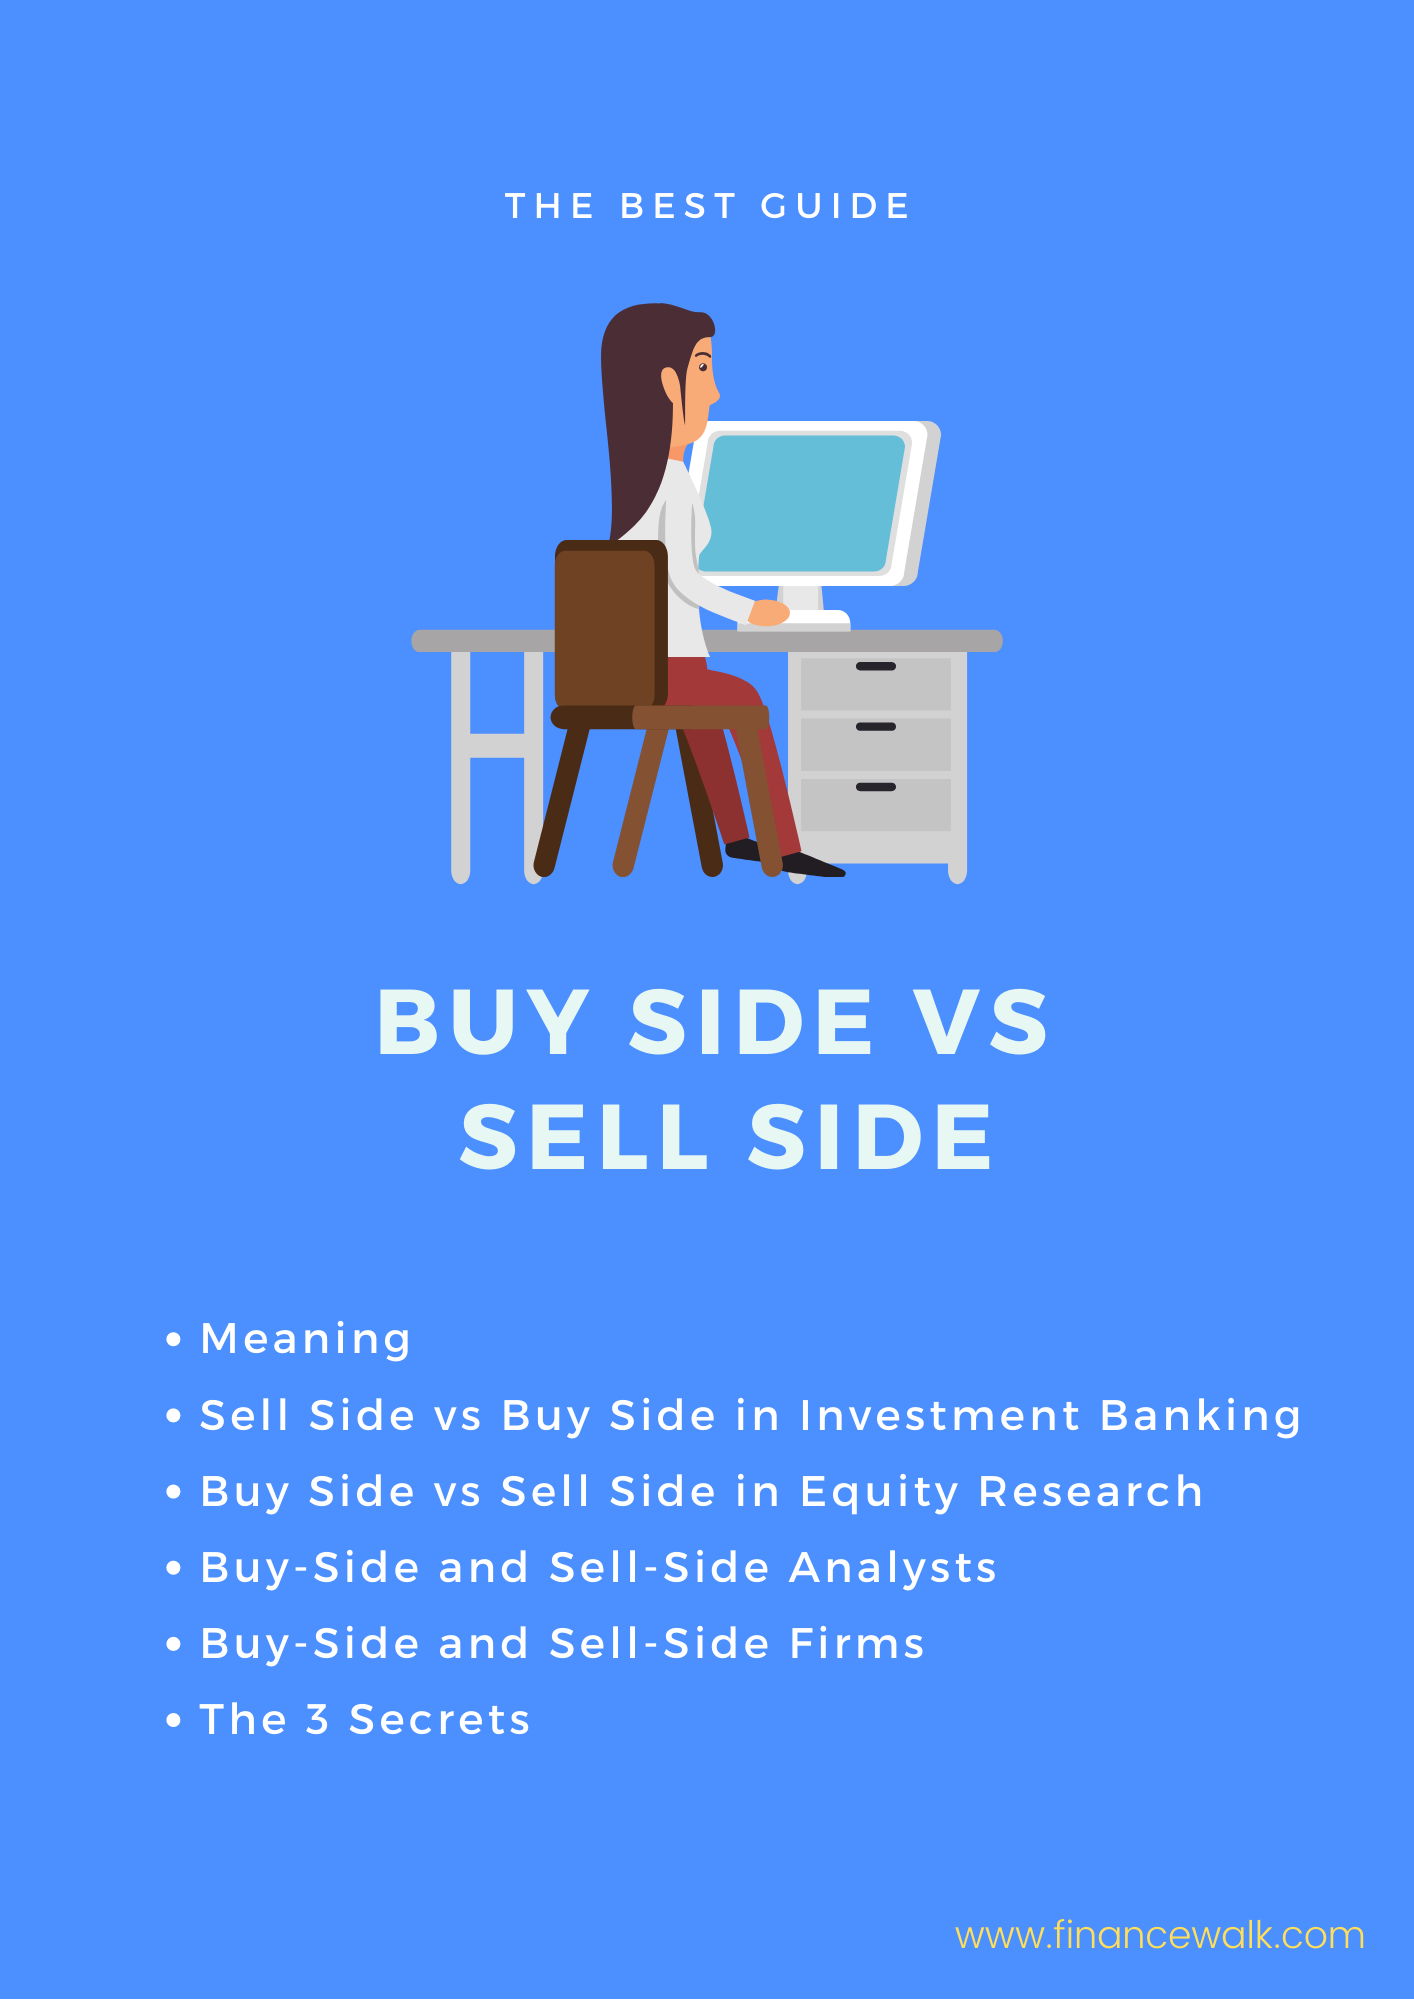 Buy side investment analyst que es inexistencia juridica investments